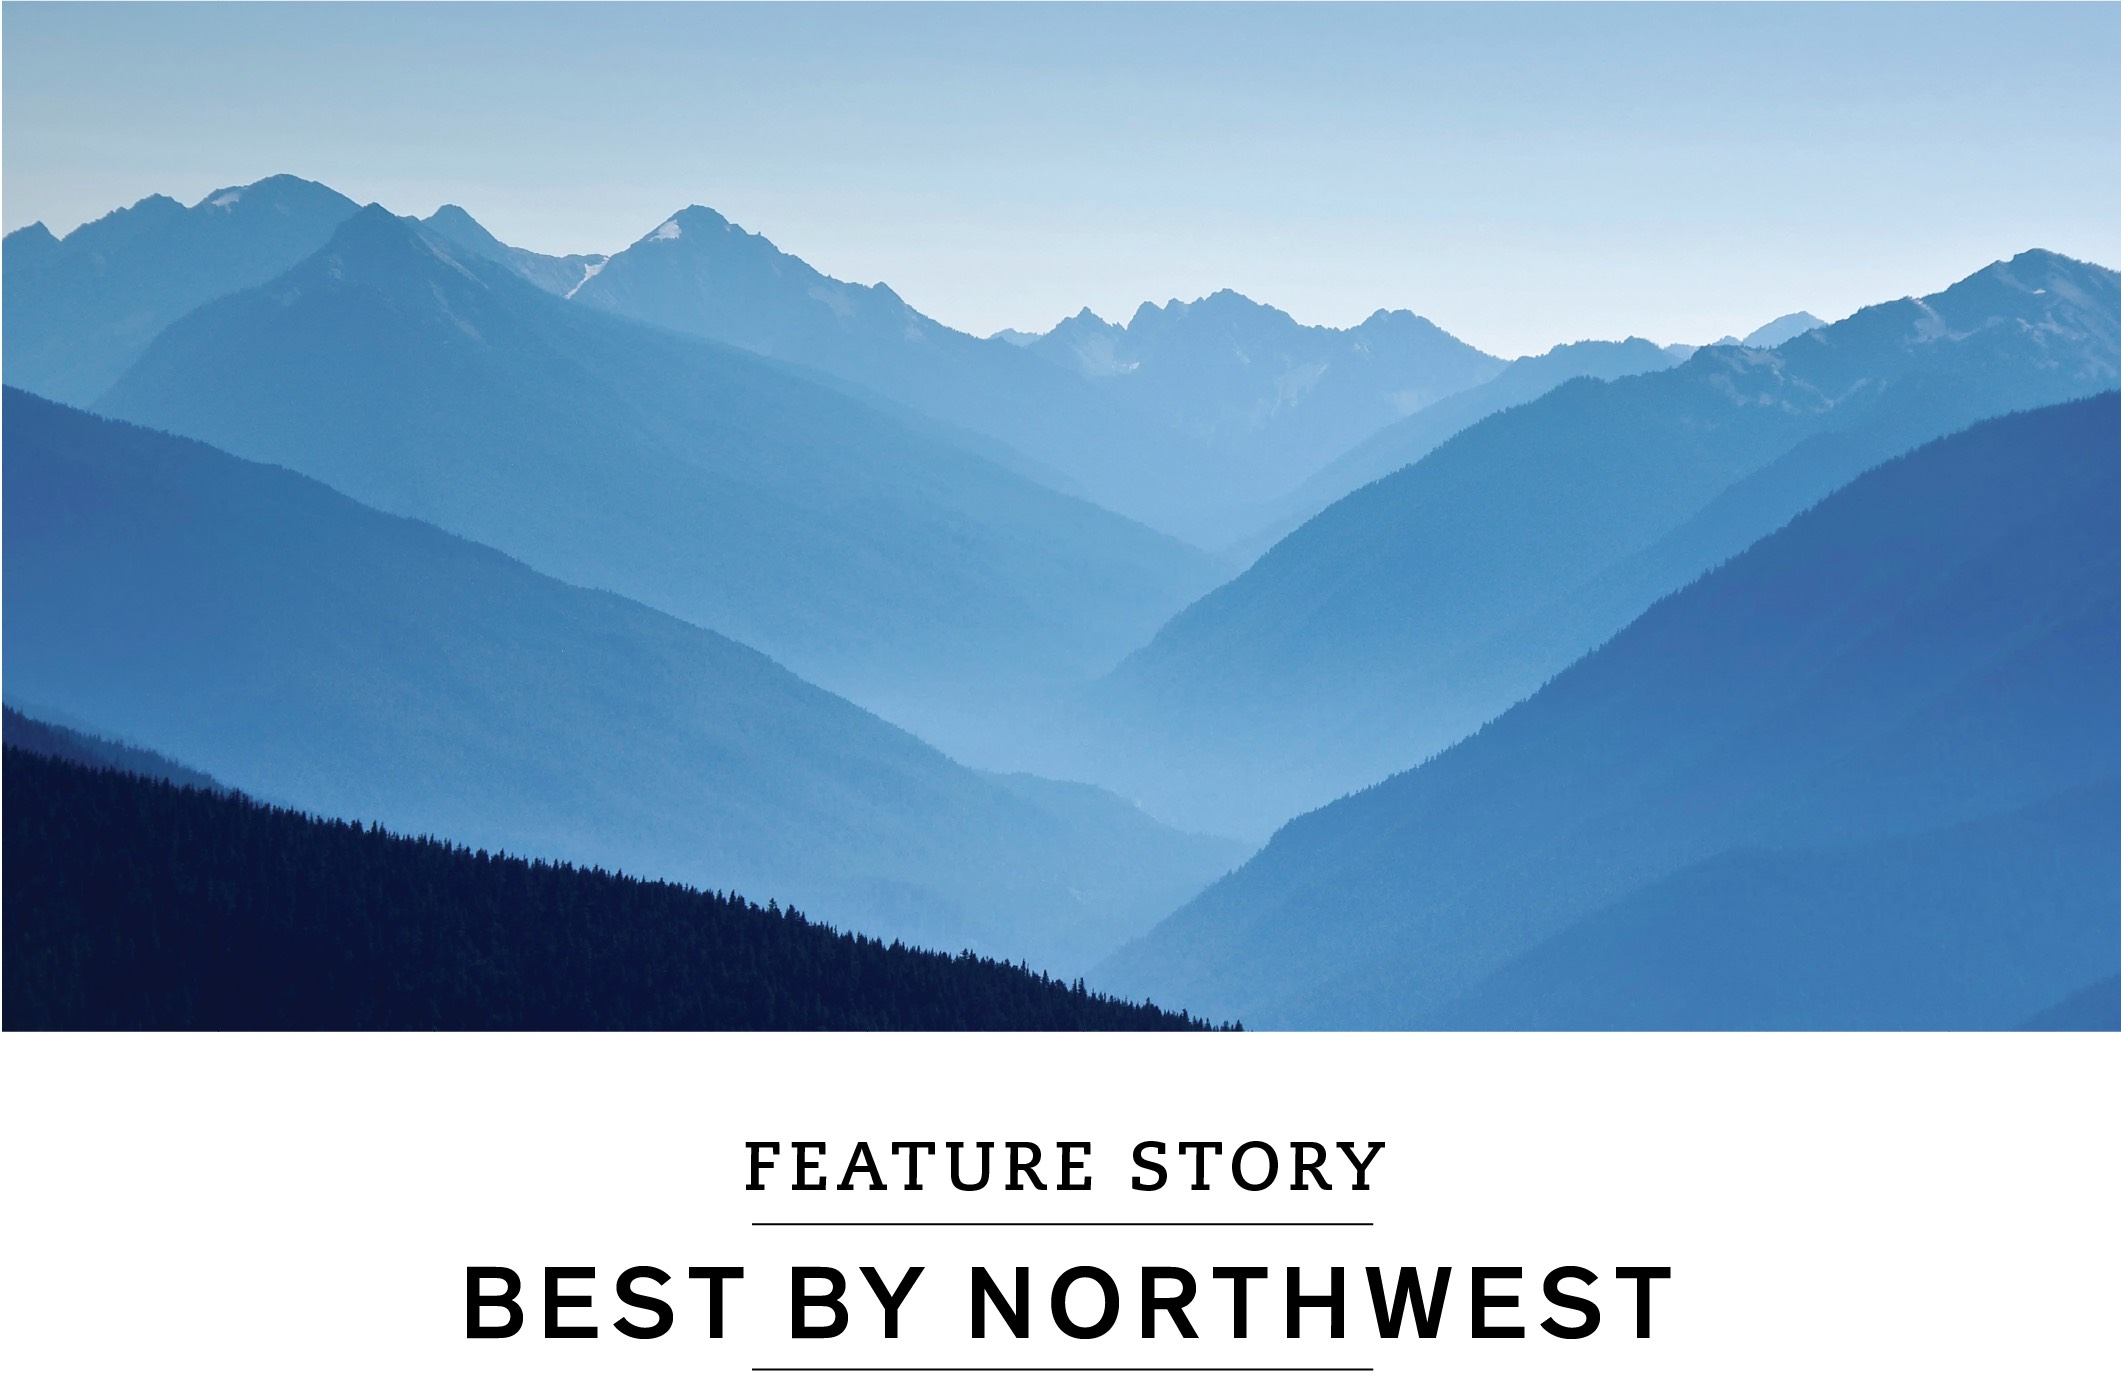 Feature Story: Best by Northwest